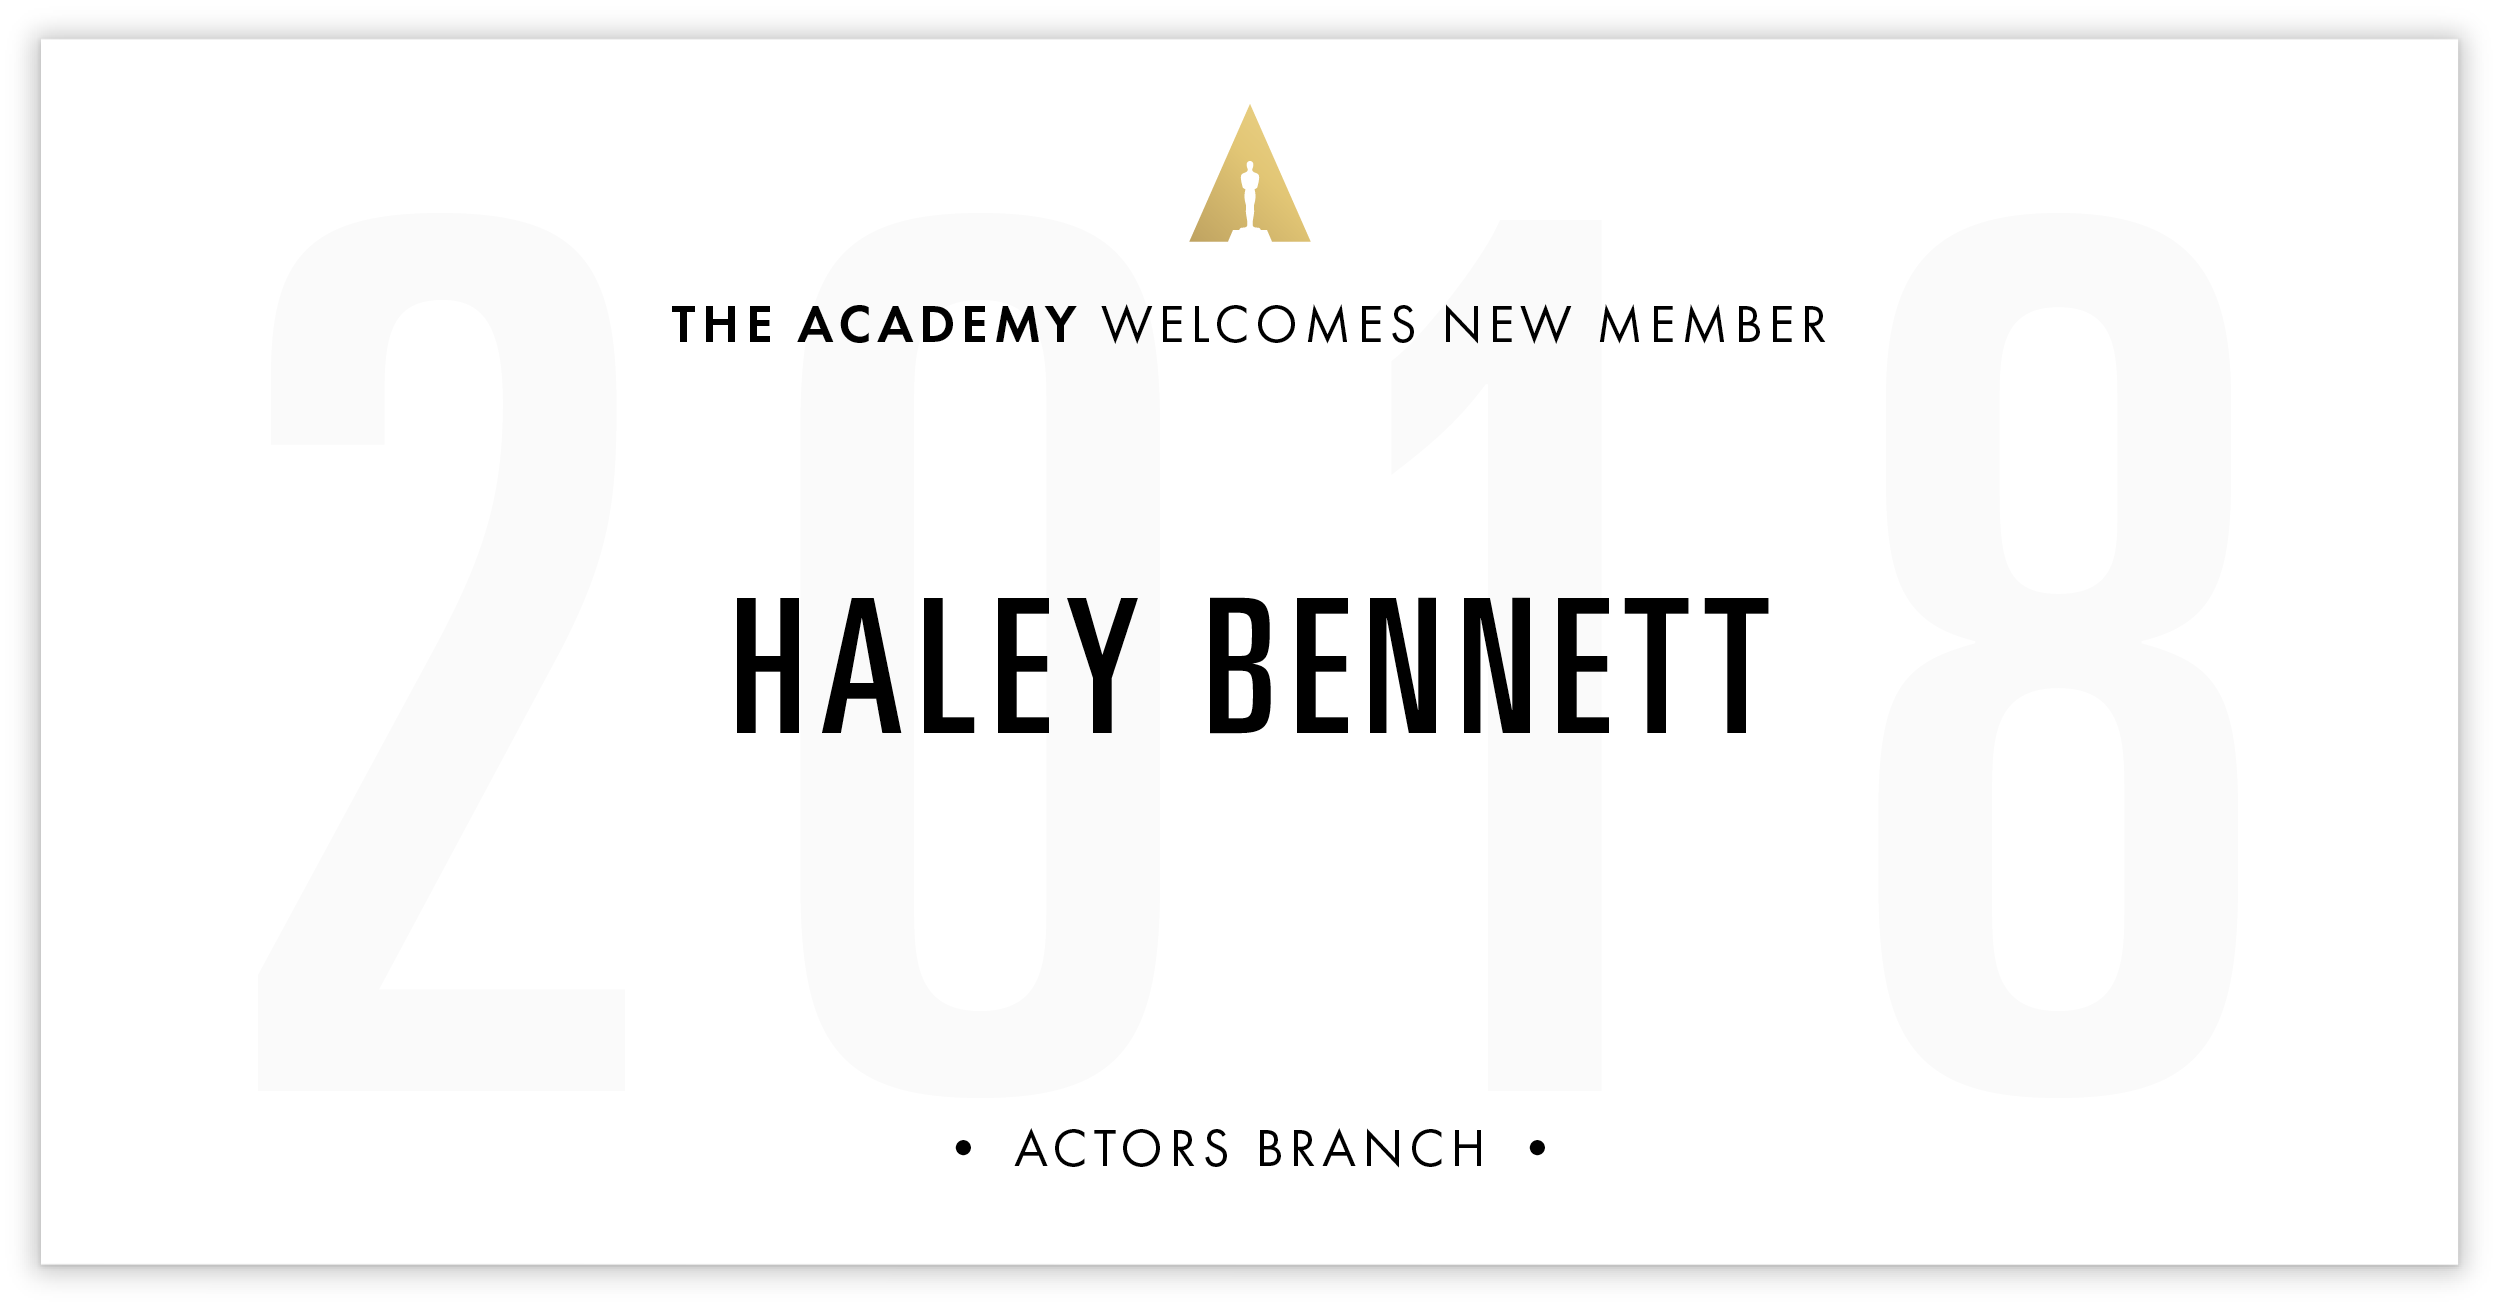 Haley Bennett is invited!